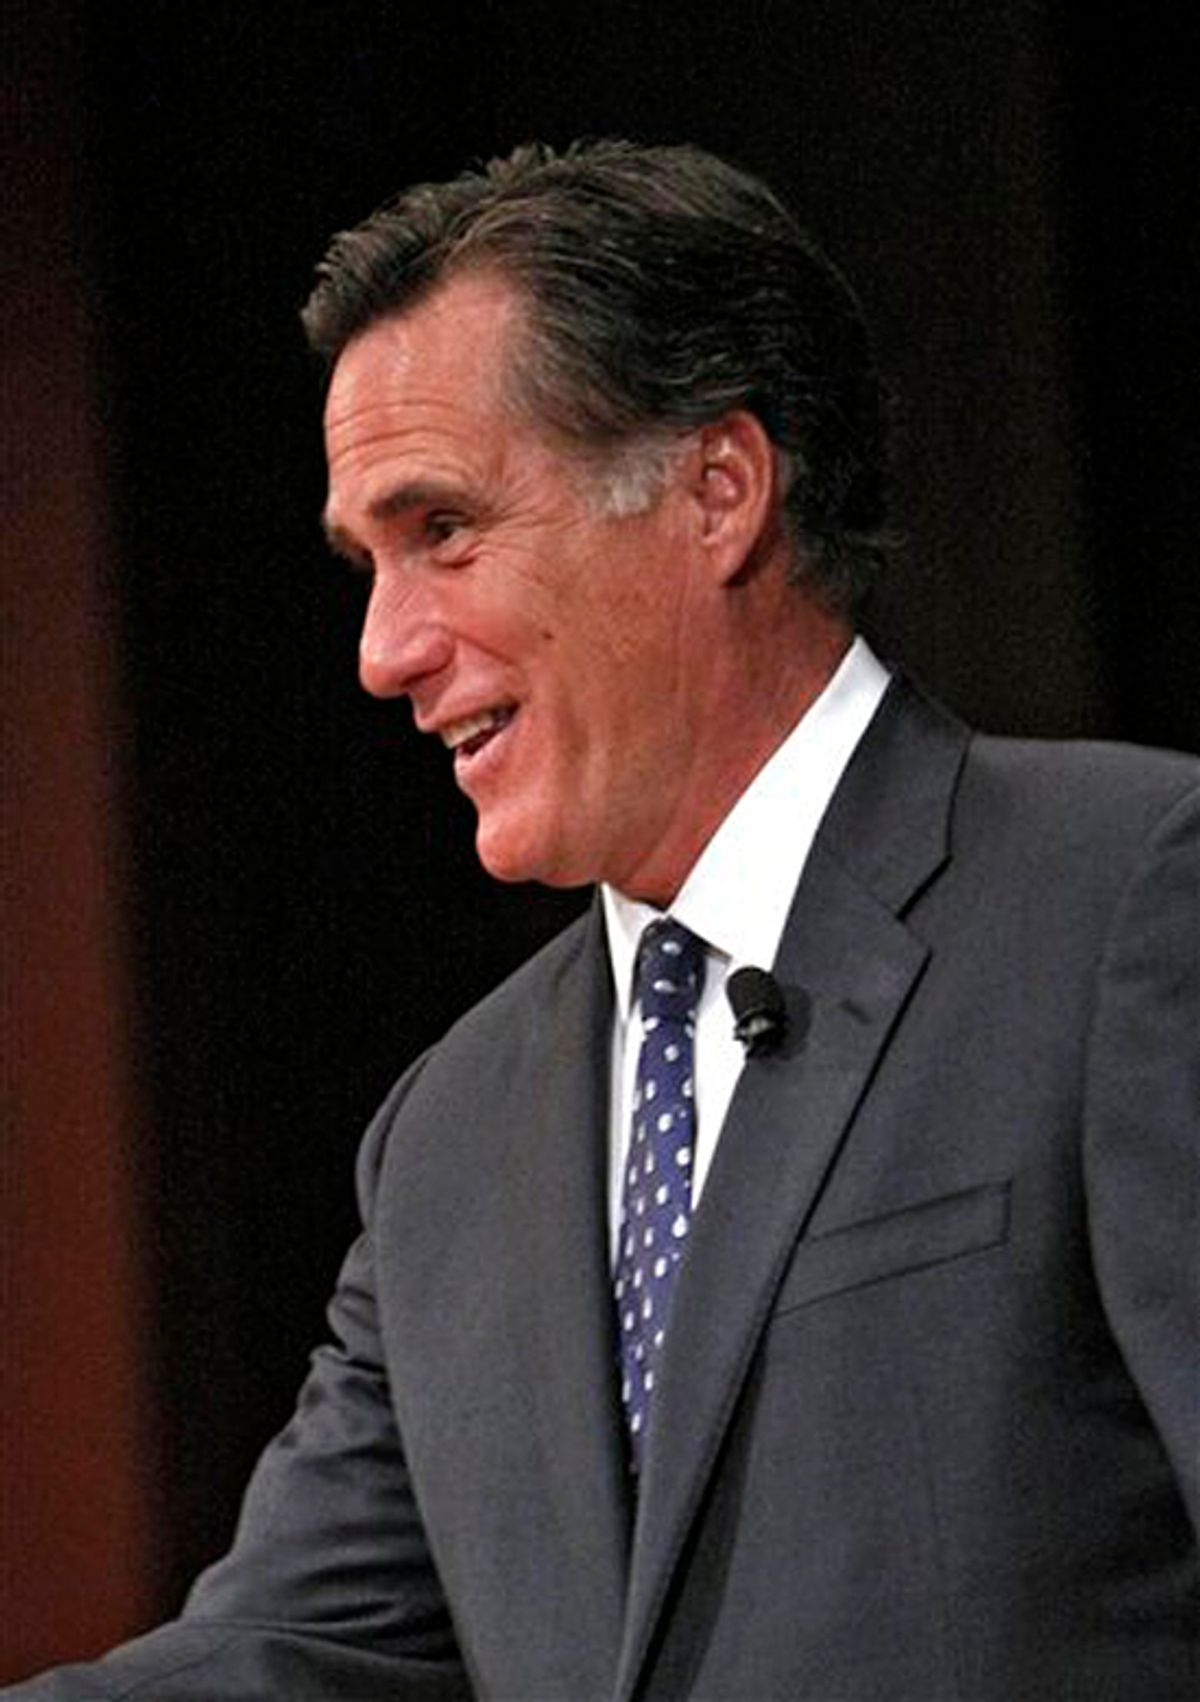 Former Massachusetts Governor Mitt Romney points to a friend in the audience before speaking in the Chase Auditorium in Chicago on Wednesday,  March 24, 2010. (AP Photo/Charles Cherney) (Charles Cherney)